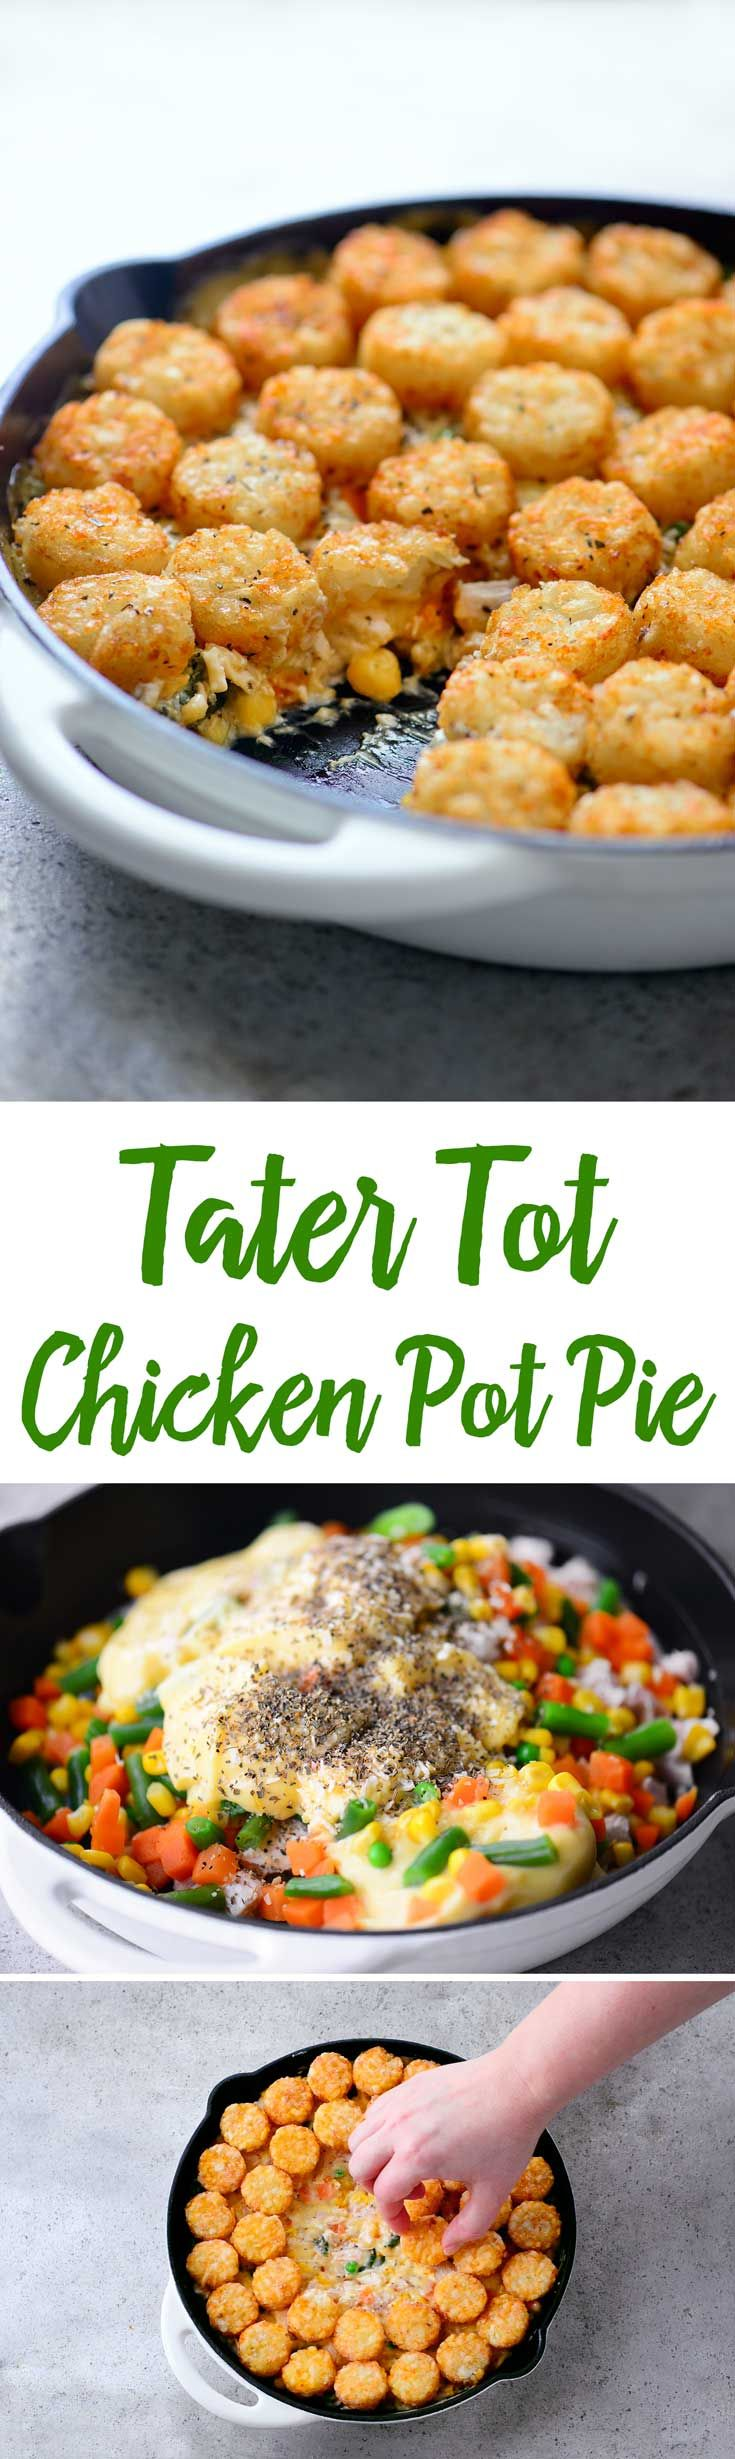 er Tot Chicken Pot Pie because admit it...pie crust is boring. The whole family will love this spin on the traditional chicken pot pie recipe with the potatoes on top rather than stuffed inside!